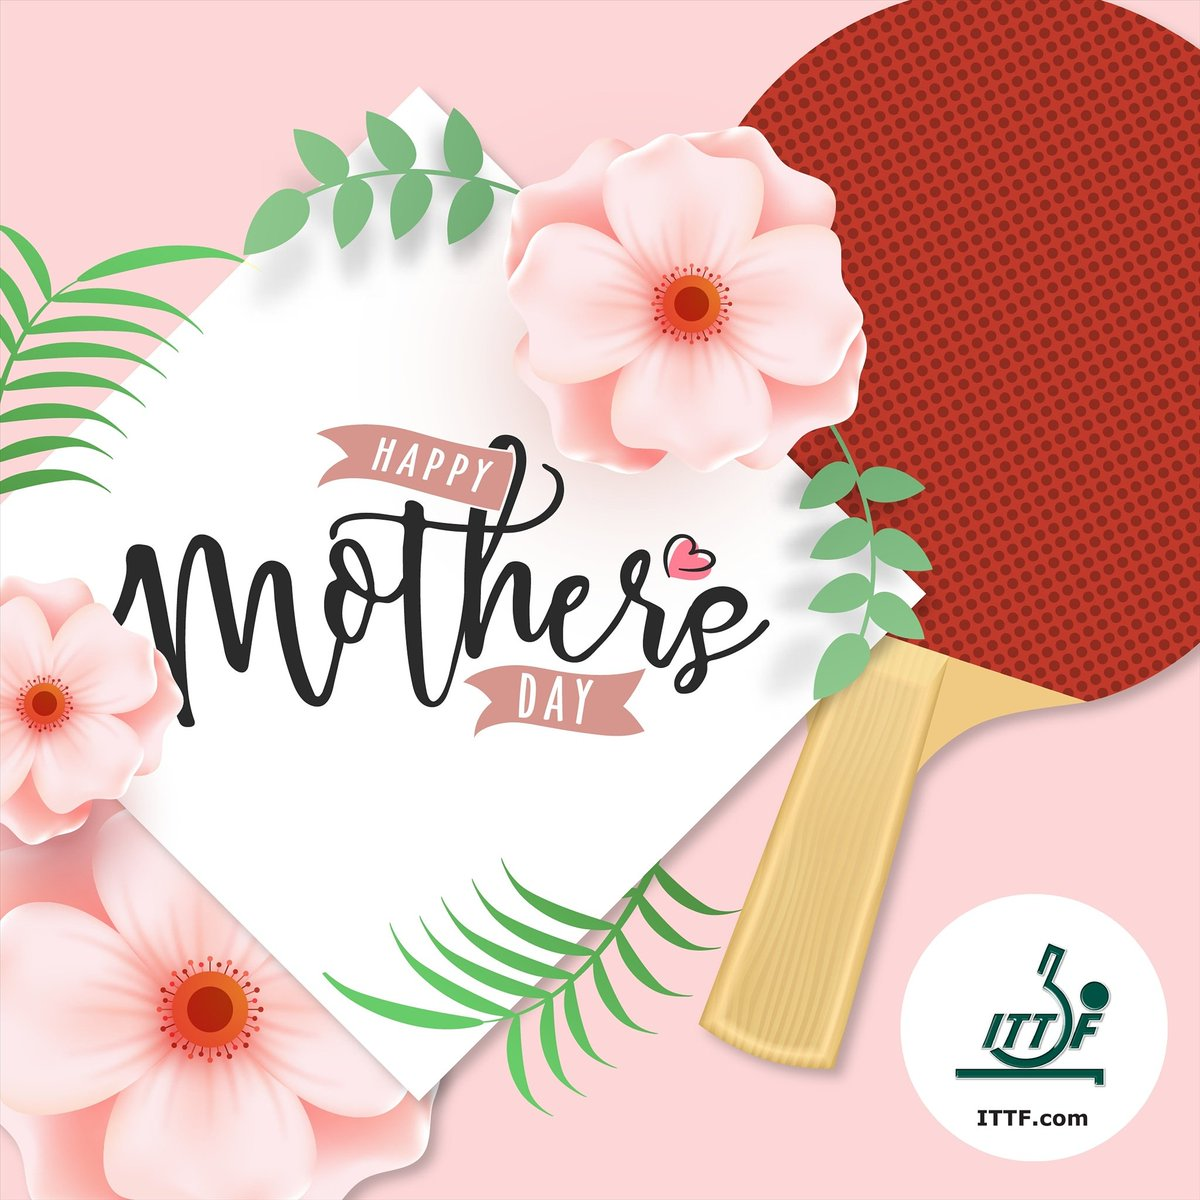 Happy Mother's Day to all #tabletennis mums!! 💕💕💕 #happymothersday